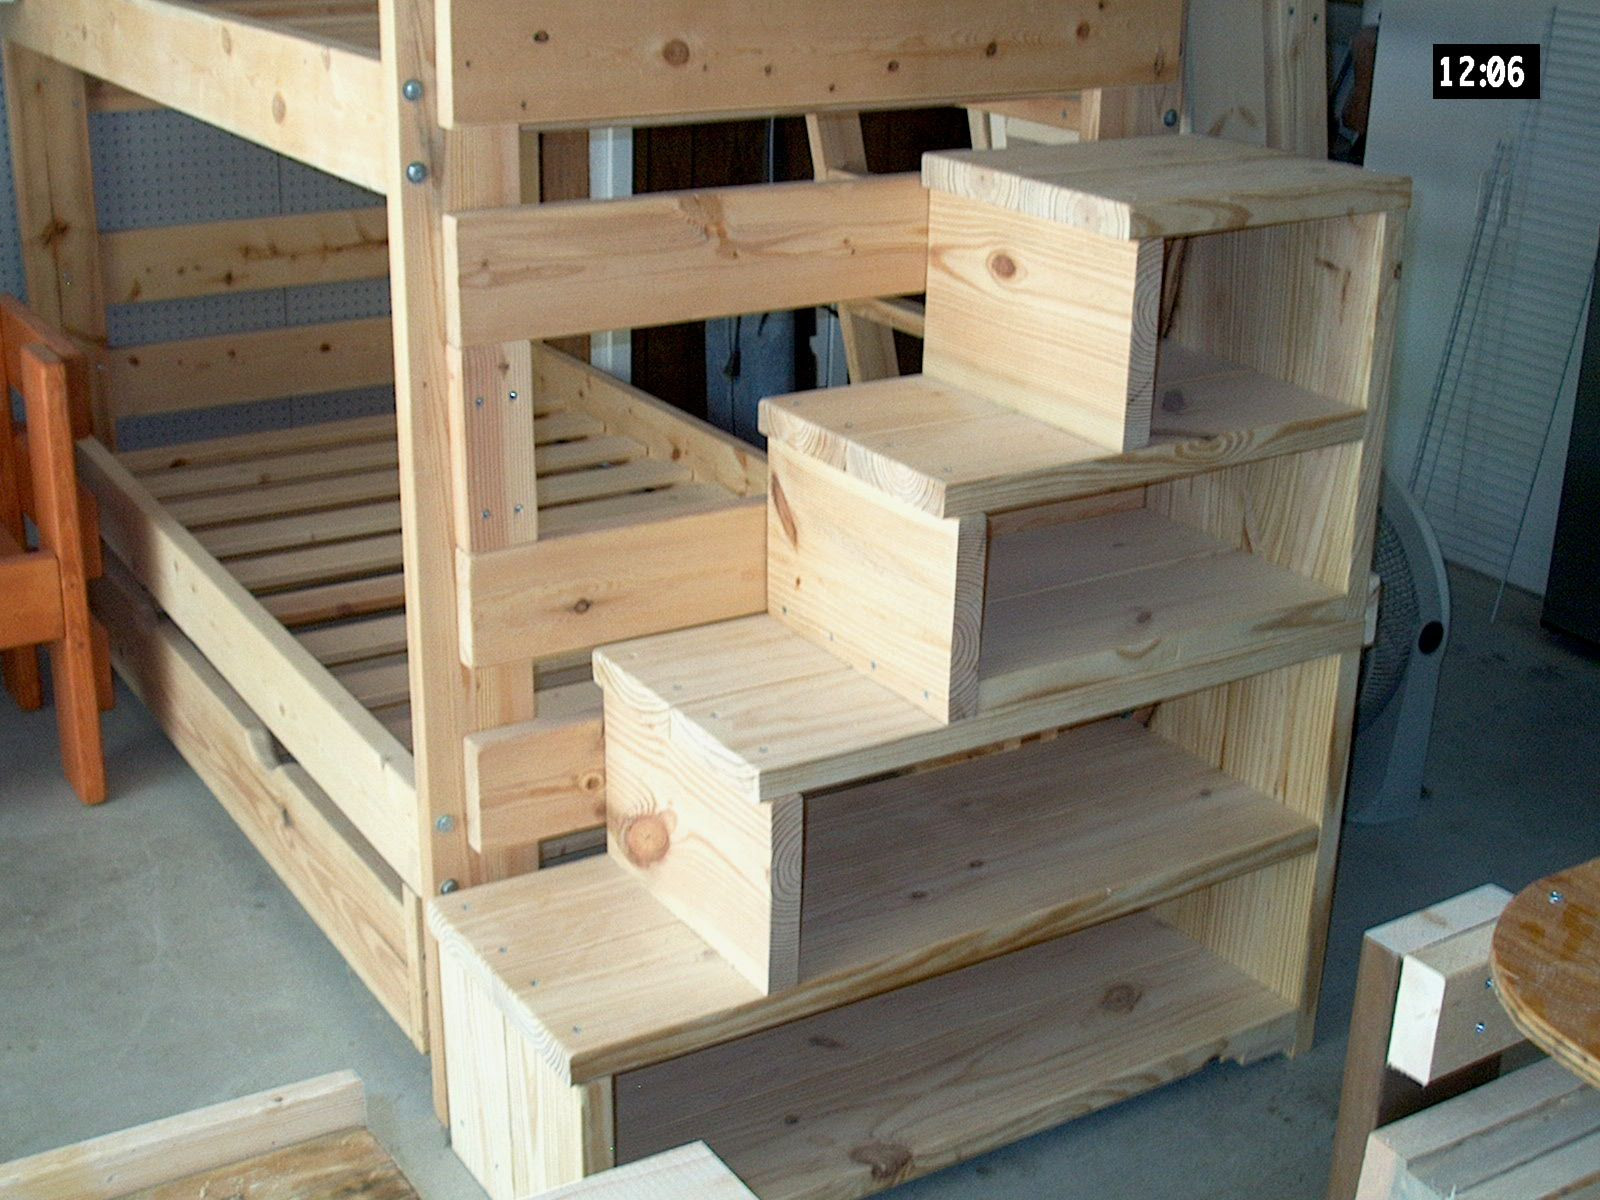 Best ideas about DIY Bunk Bed Ladder . Save or Pin Best 25 Bunk bed ladder ideas on Pinterest Now.